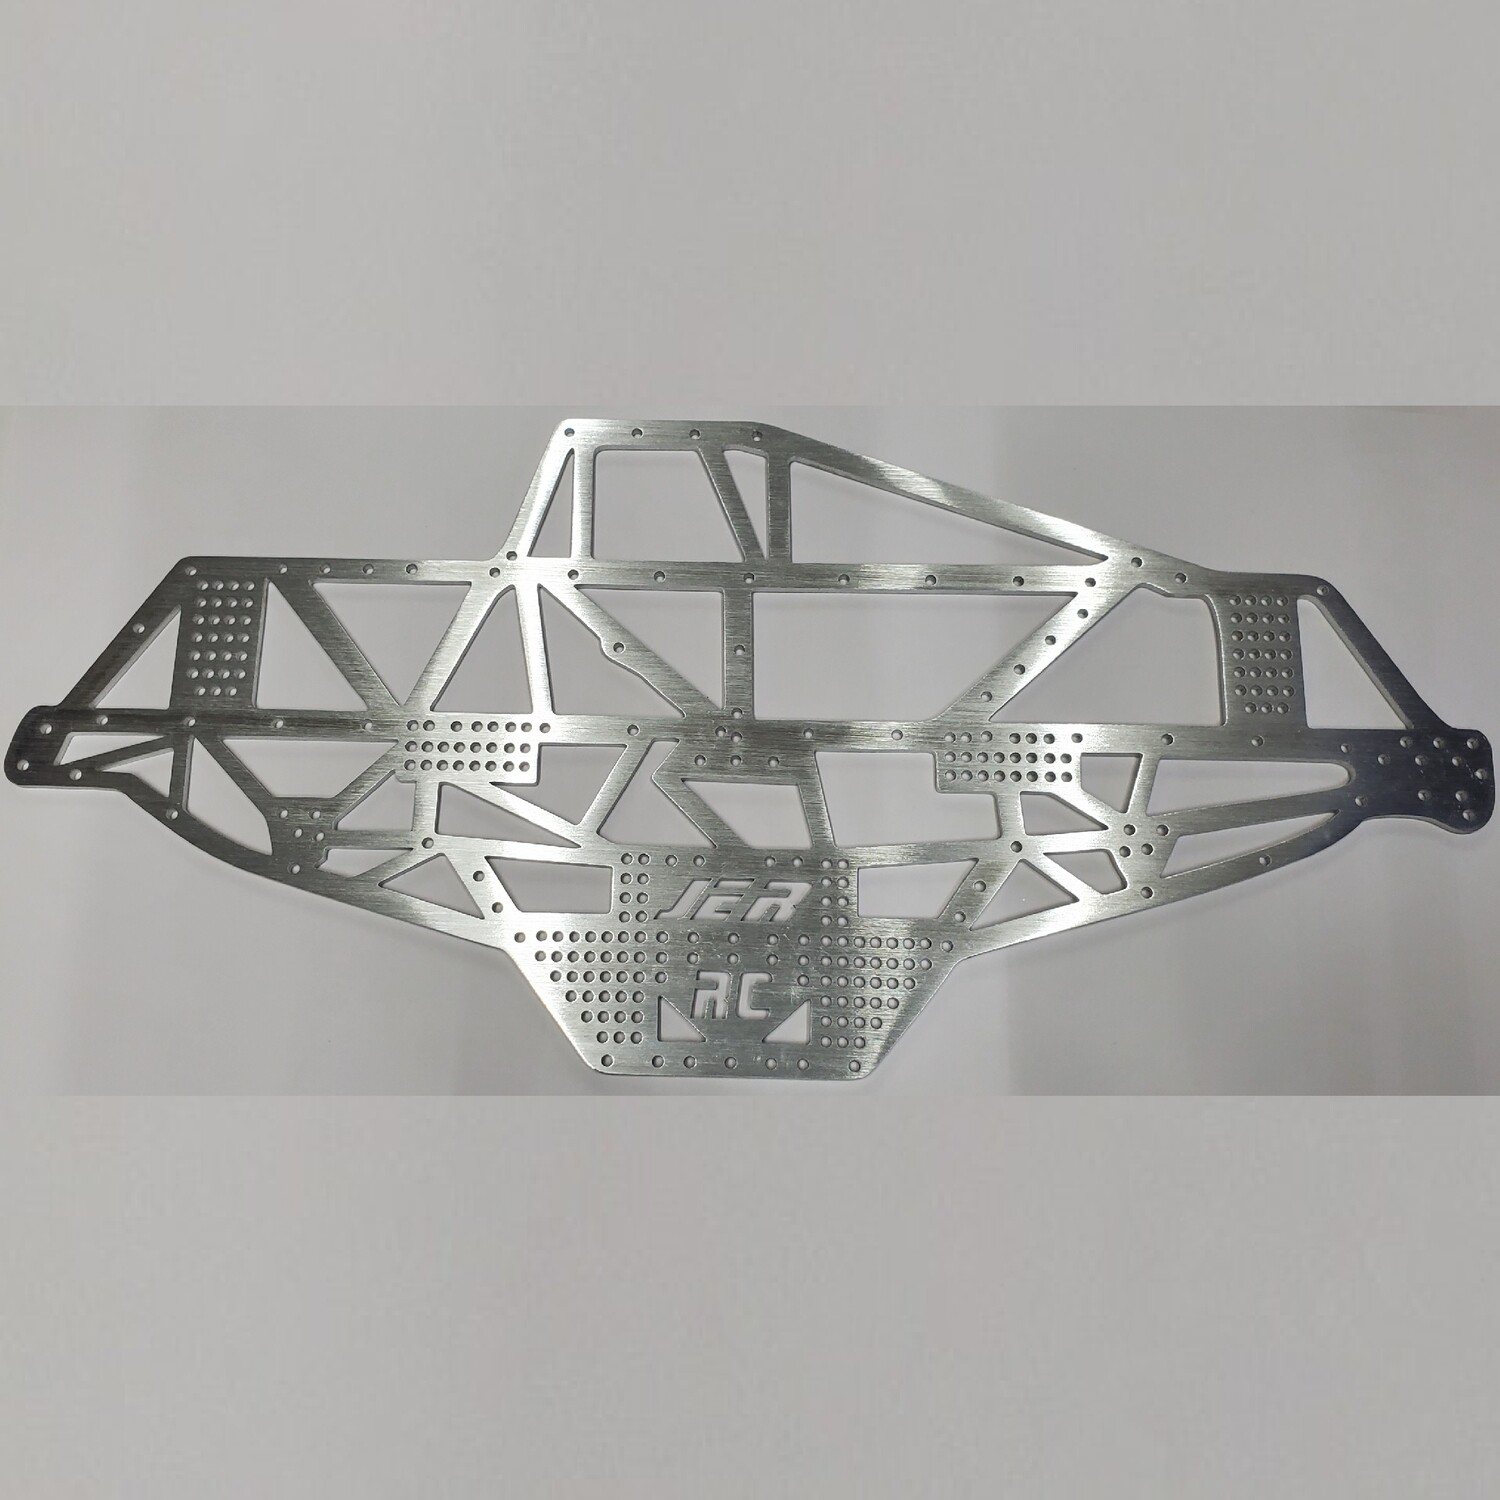 APEP Cage Chassis Kit raw aluminum